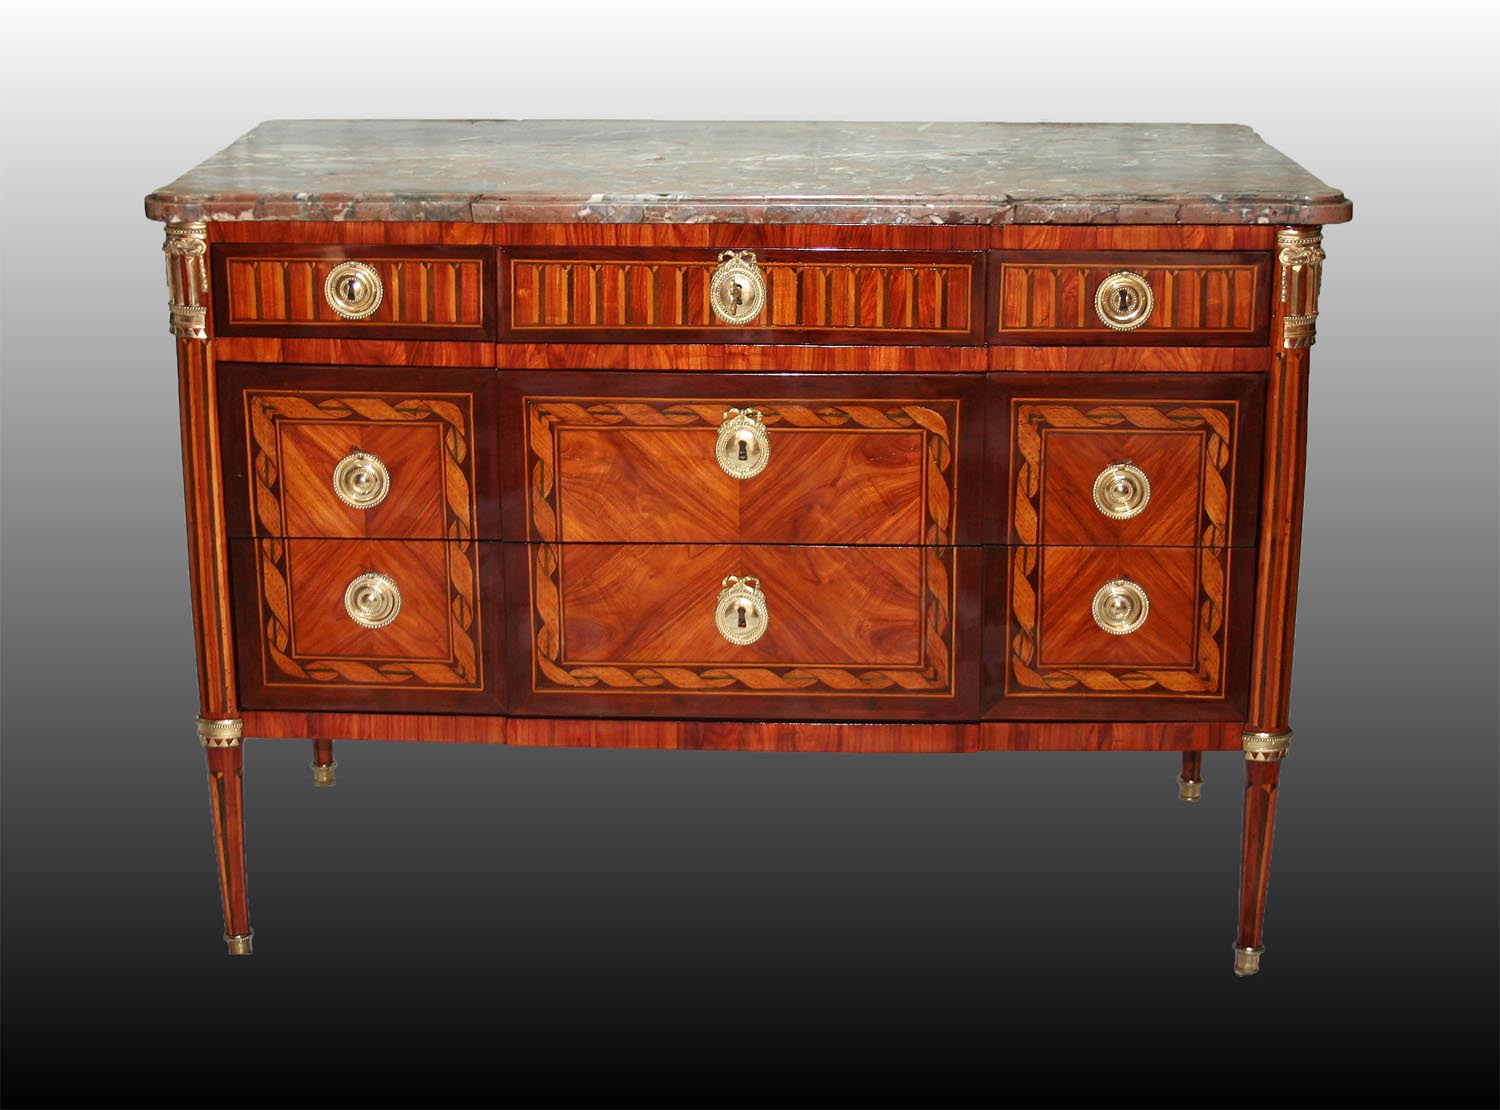 Commode d��poque Louis XVI